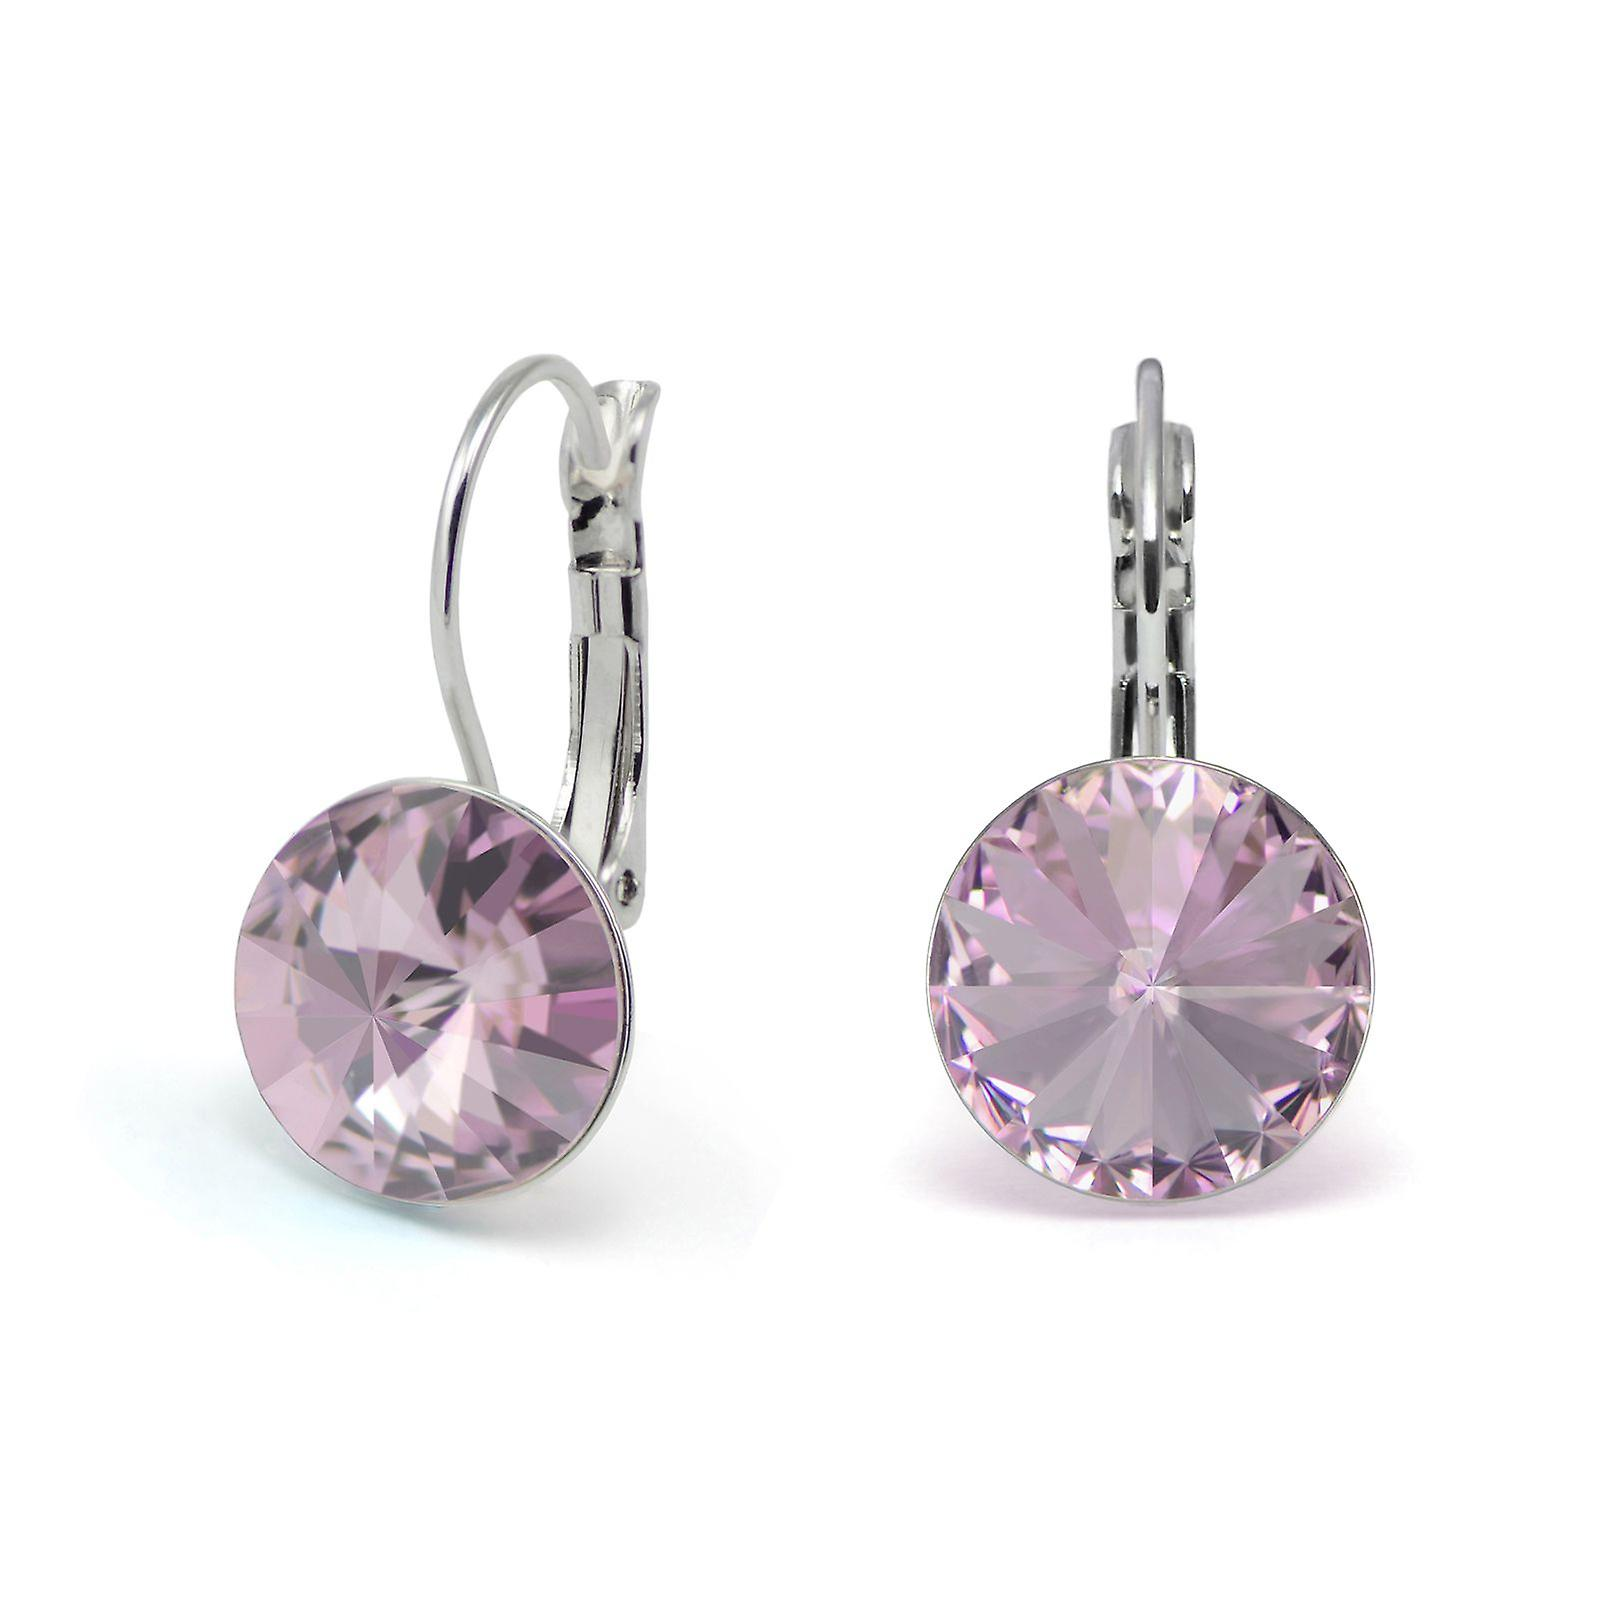 Light Amethyst crystal earrings EMB 1.3